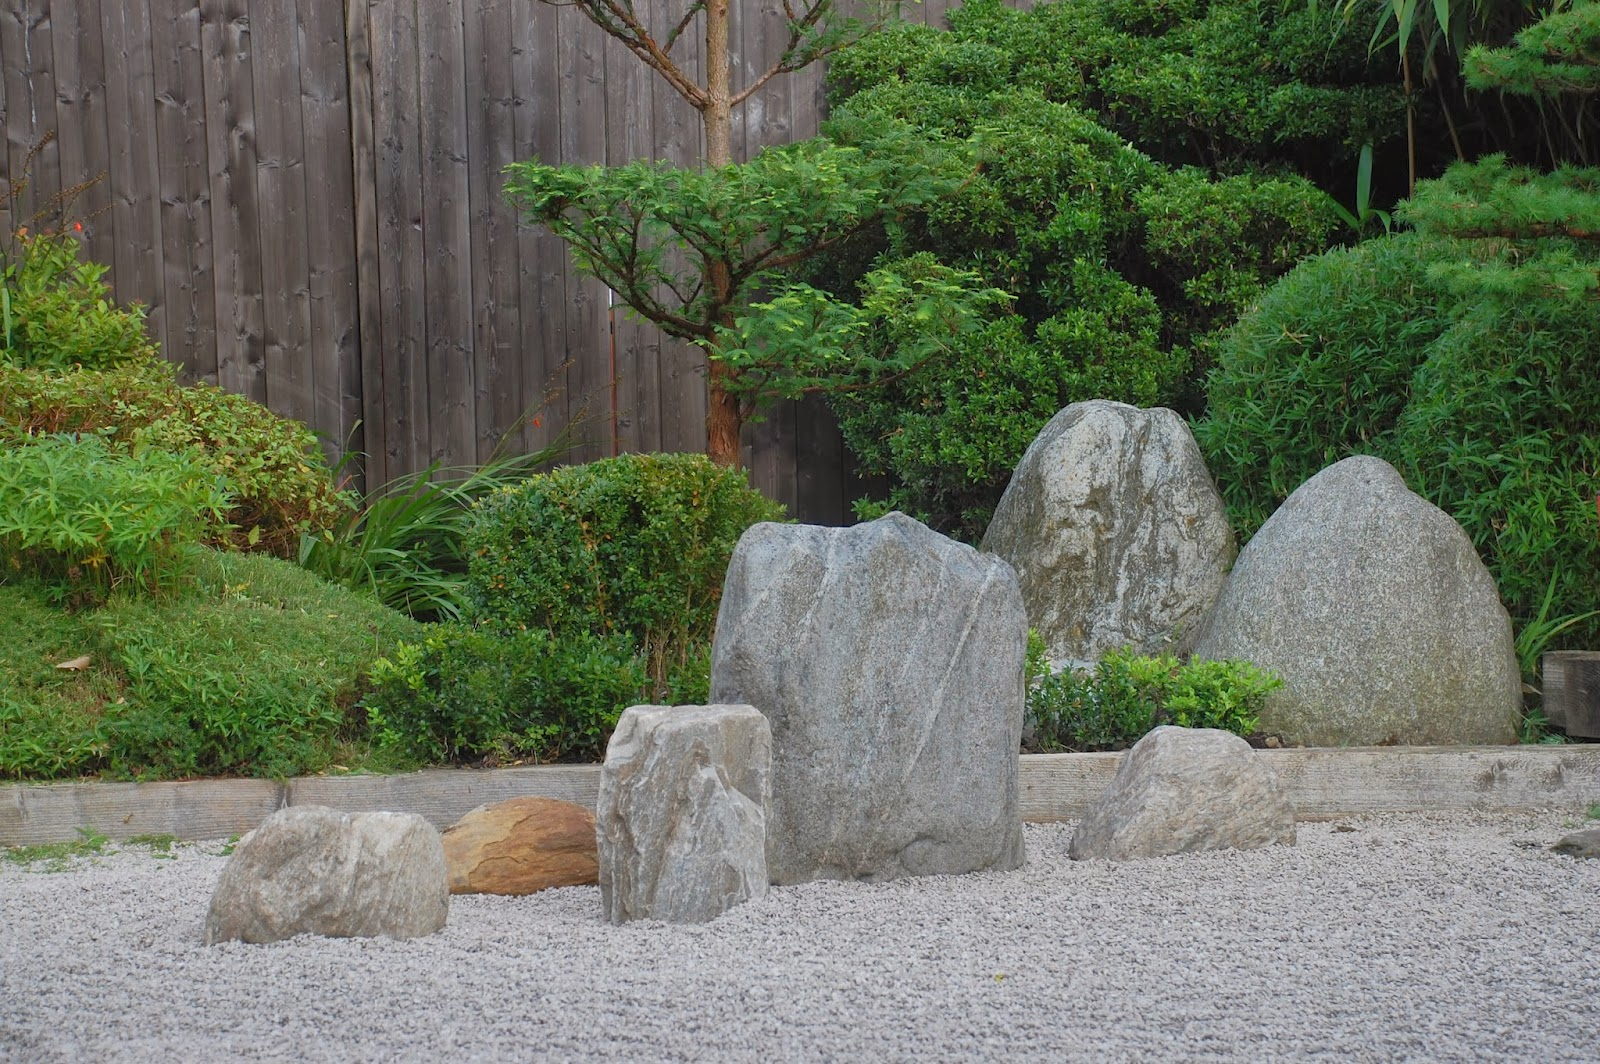 Robert ketchell 39 s blog arranging stones in a japanese for Decoration jardin zen exterieur